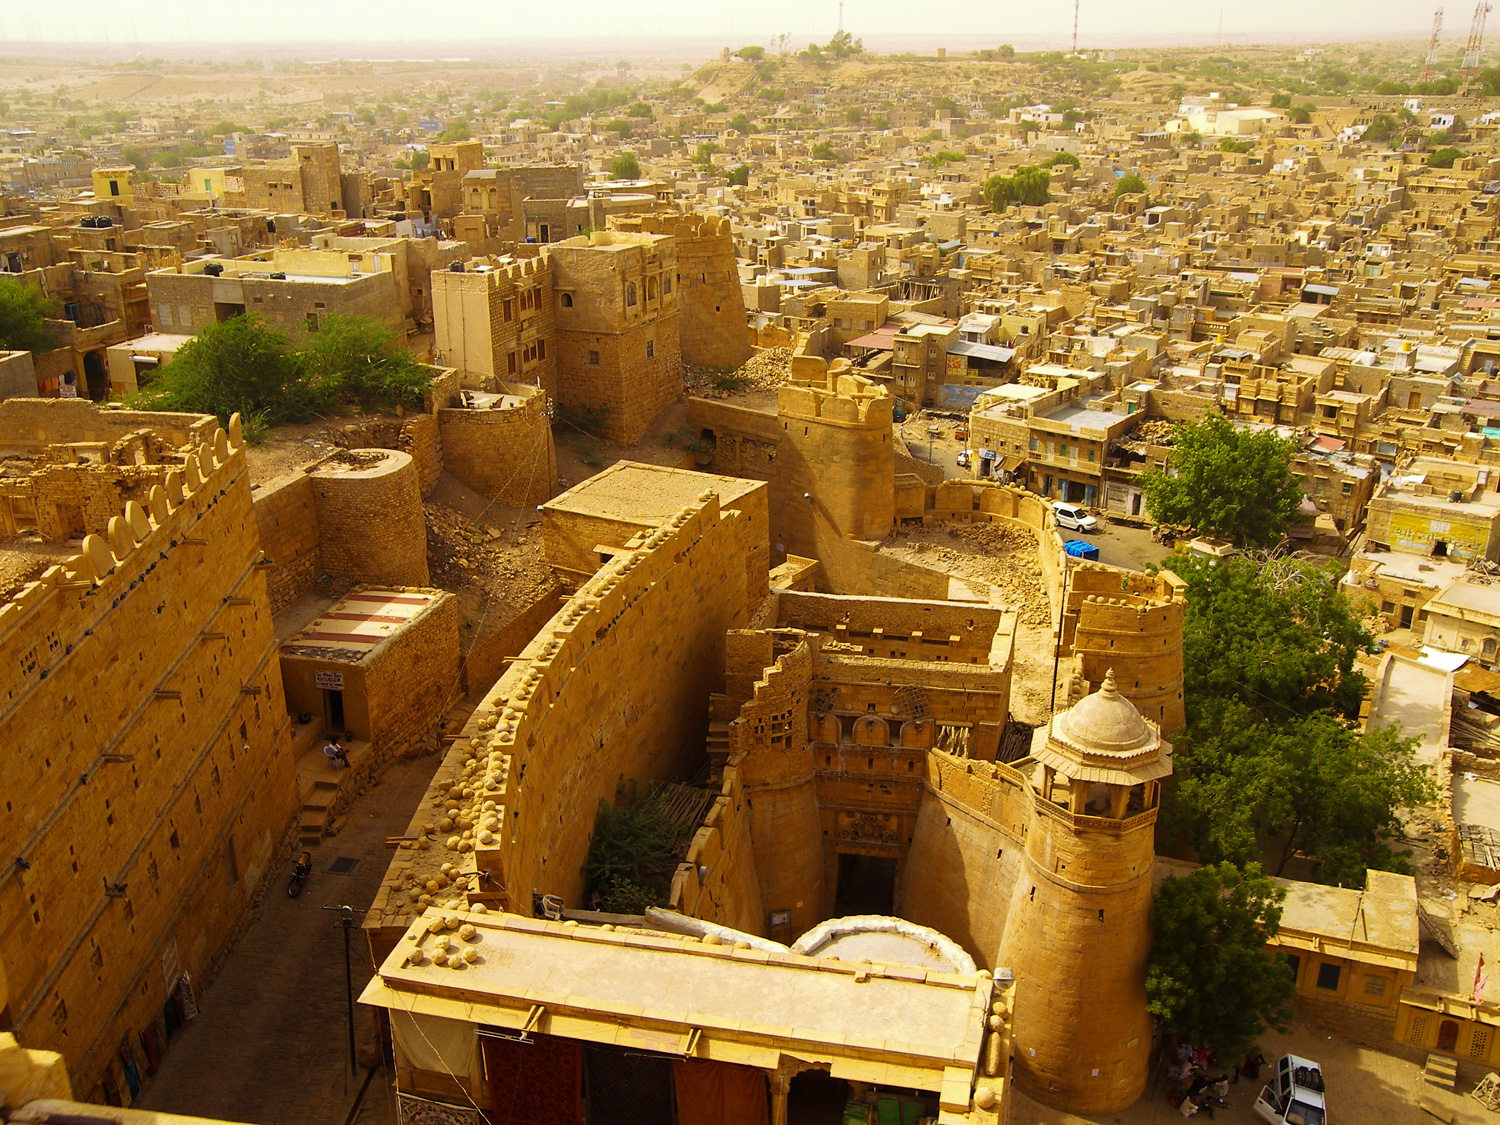 Jaisalmer-Rajasthan-Wallpapers - Tourist places in India wallpapers and Images HD pictures